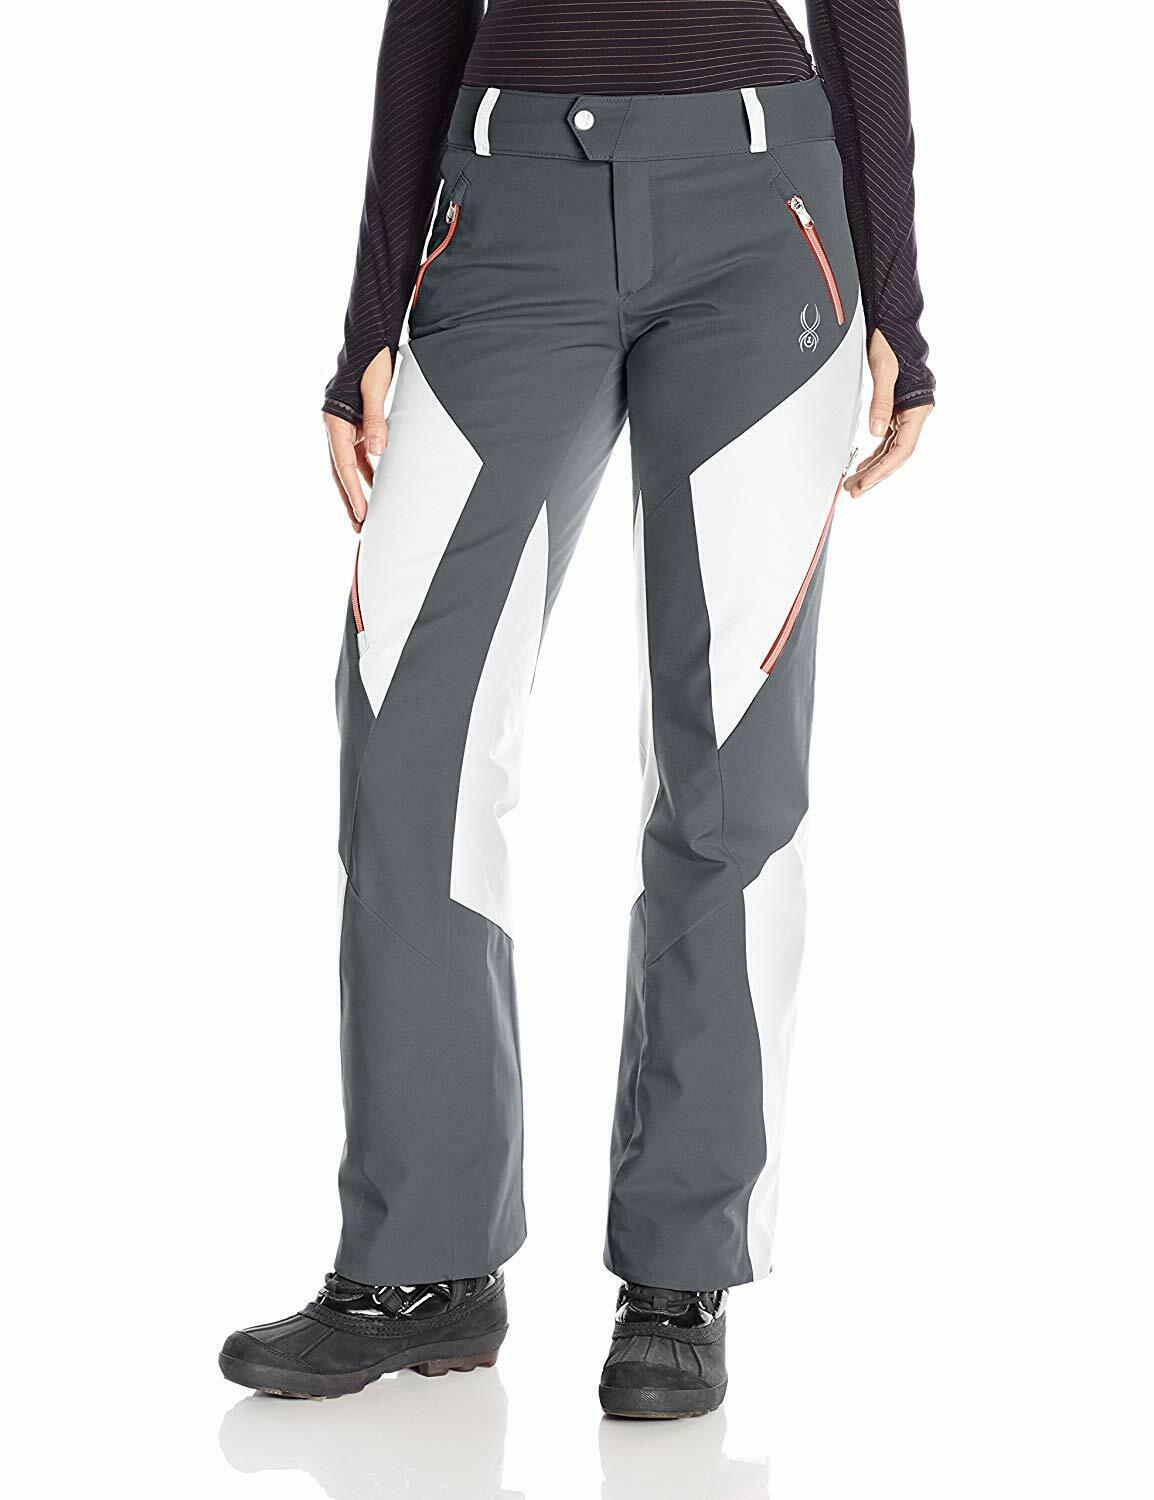 Spyder Womens Thrill Athletic Fit Pants, Size 14 Inseam L, Ski Snowboarding Pant